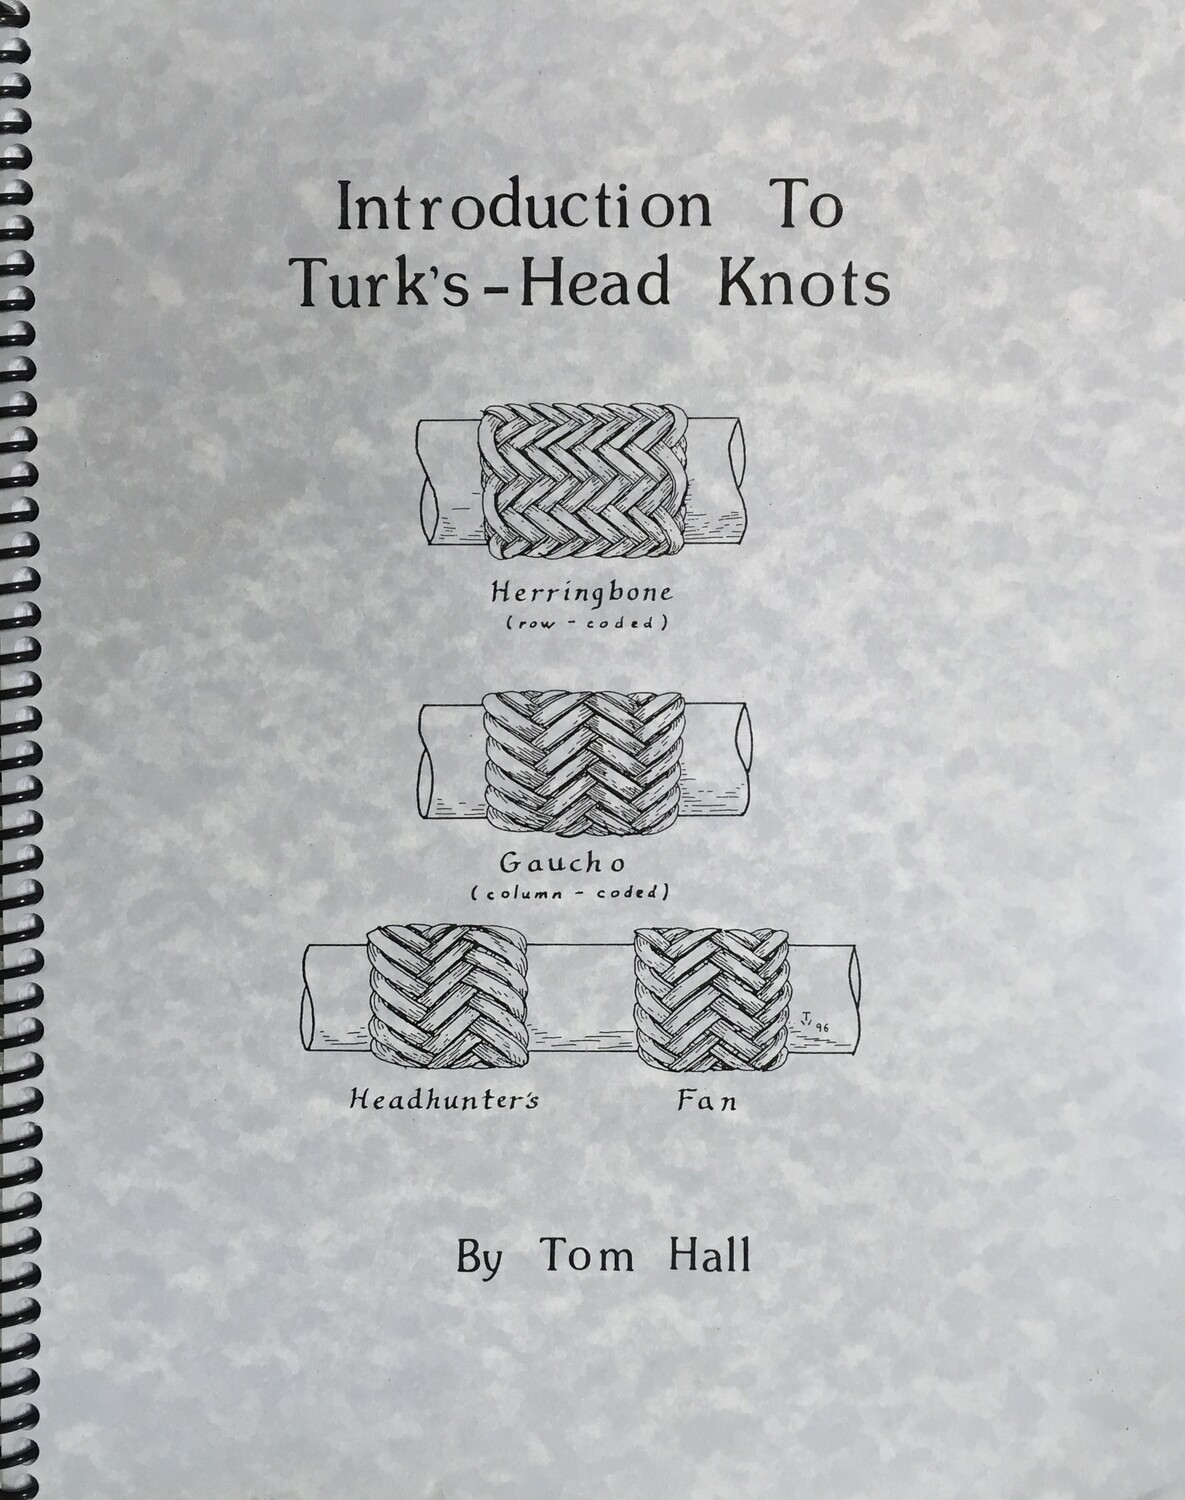 Introduction to Turk's - Head Knots